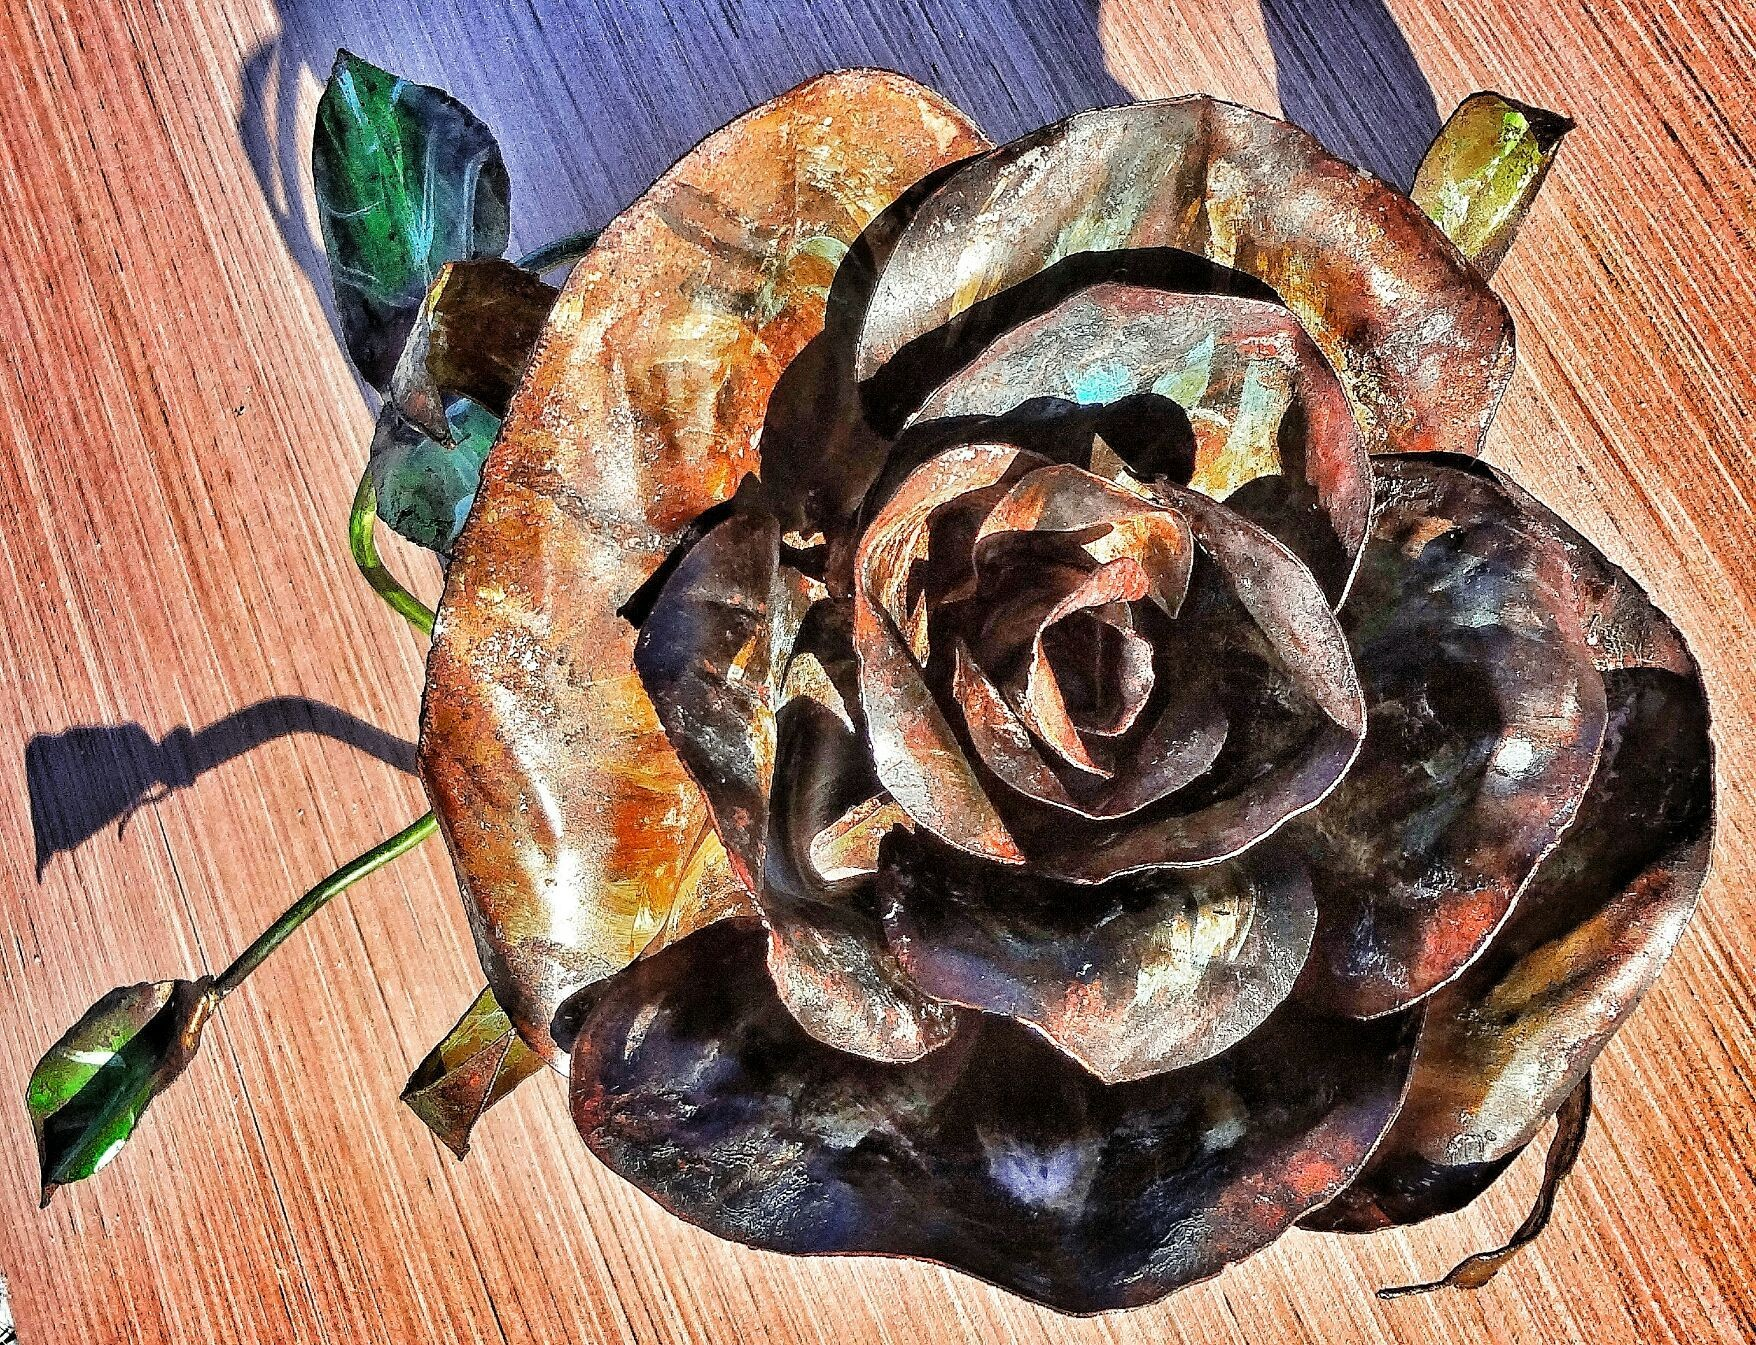 This beautiful flower is available for purchase along with many other handmade sculptures, at Black Swan Antiquities in Annville PA! Also take an additional 10% off if paying cash! www.facebook.com/thebeardedwelder #TheBeardedWelder #MetalArt #rose #sunflower #flower #heaven #hell #sculpture #flower #hope #newyear #karma #origina #chive #chivette #saturday #sunday #beard #slipknot #clutch #marketplace #icehouse #pi #pink #yin #yang